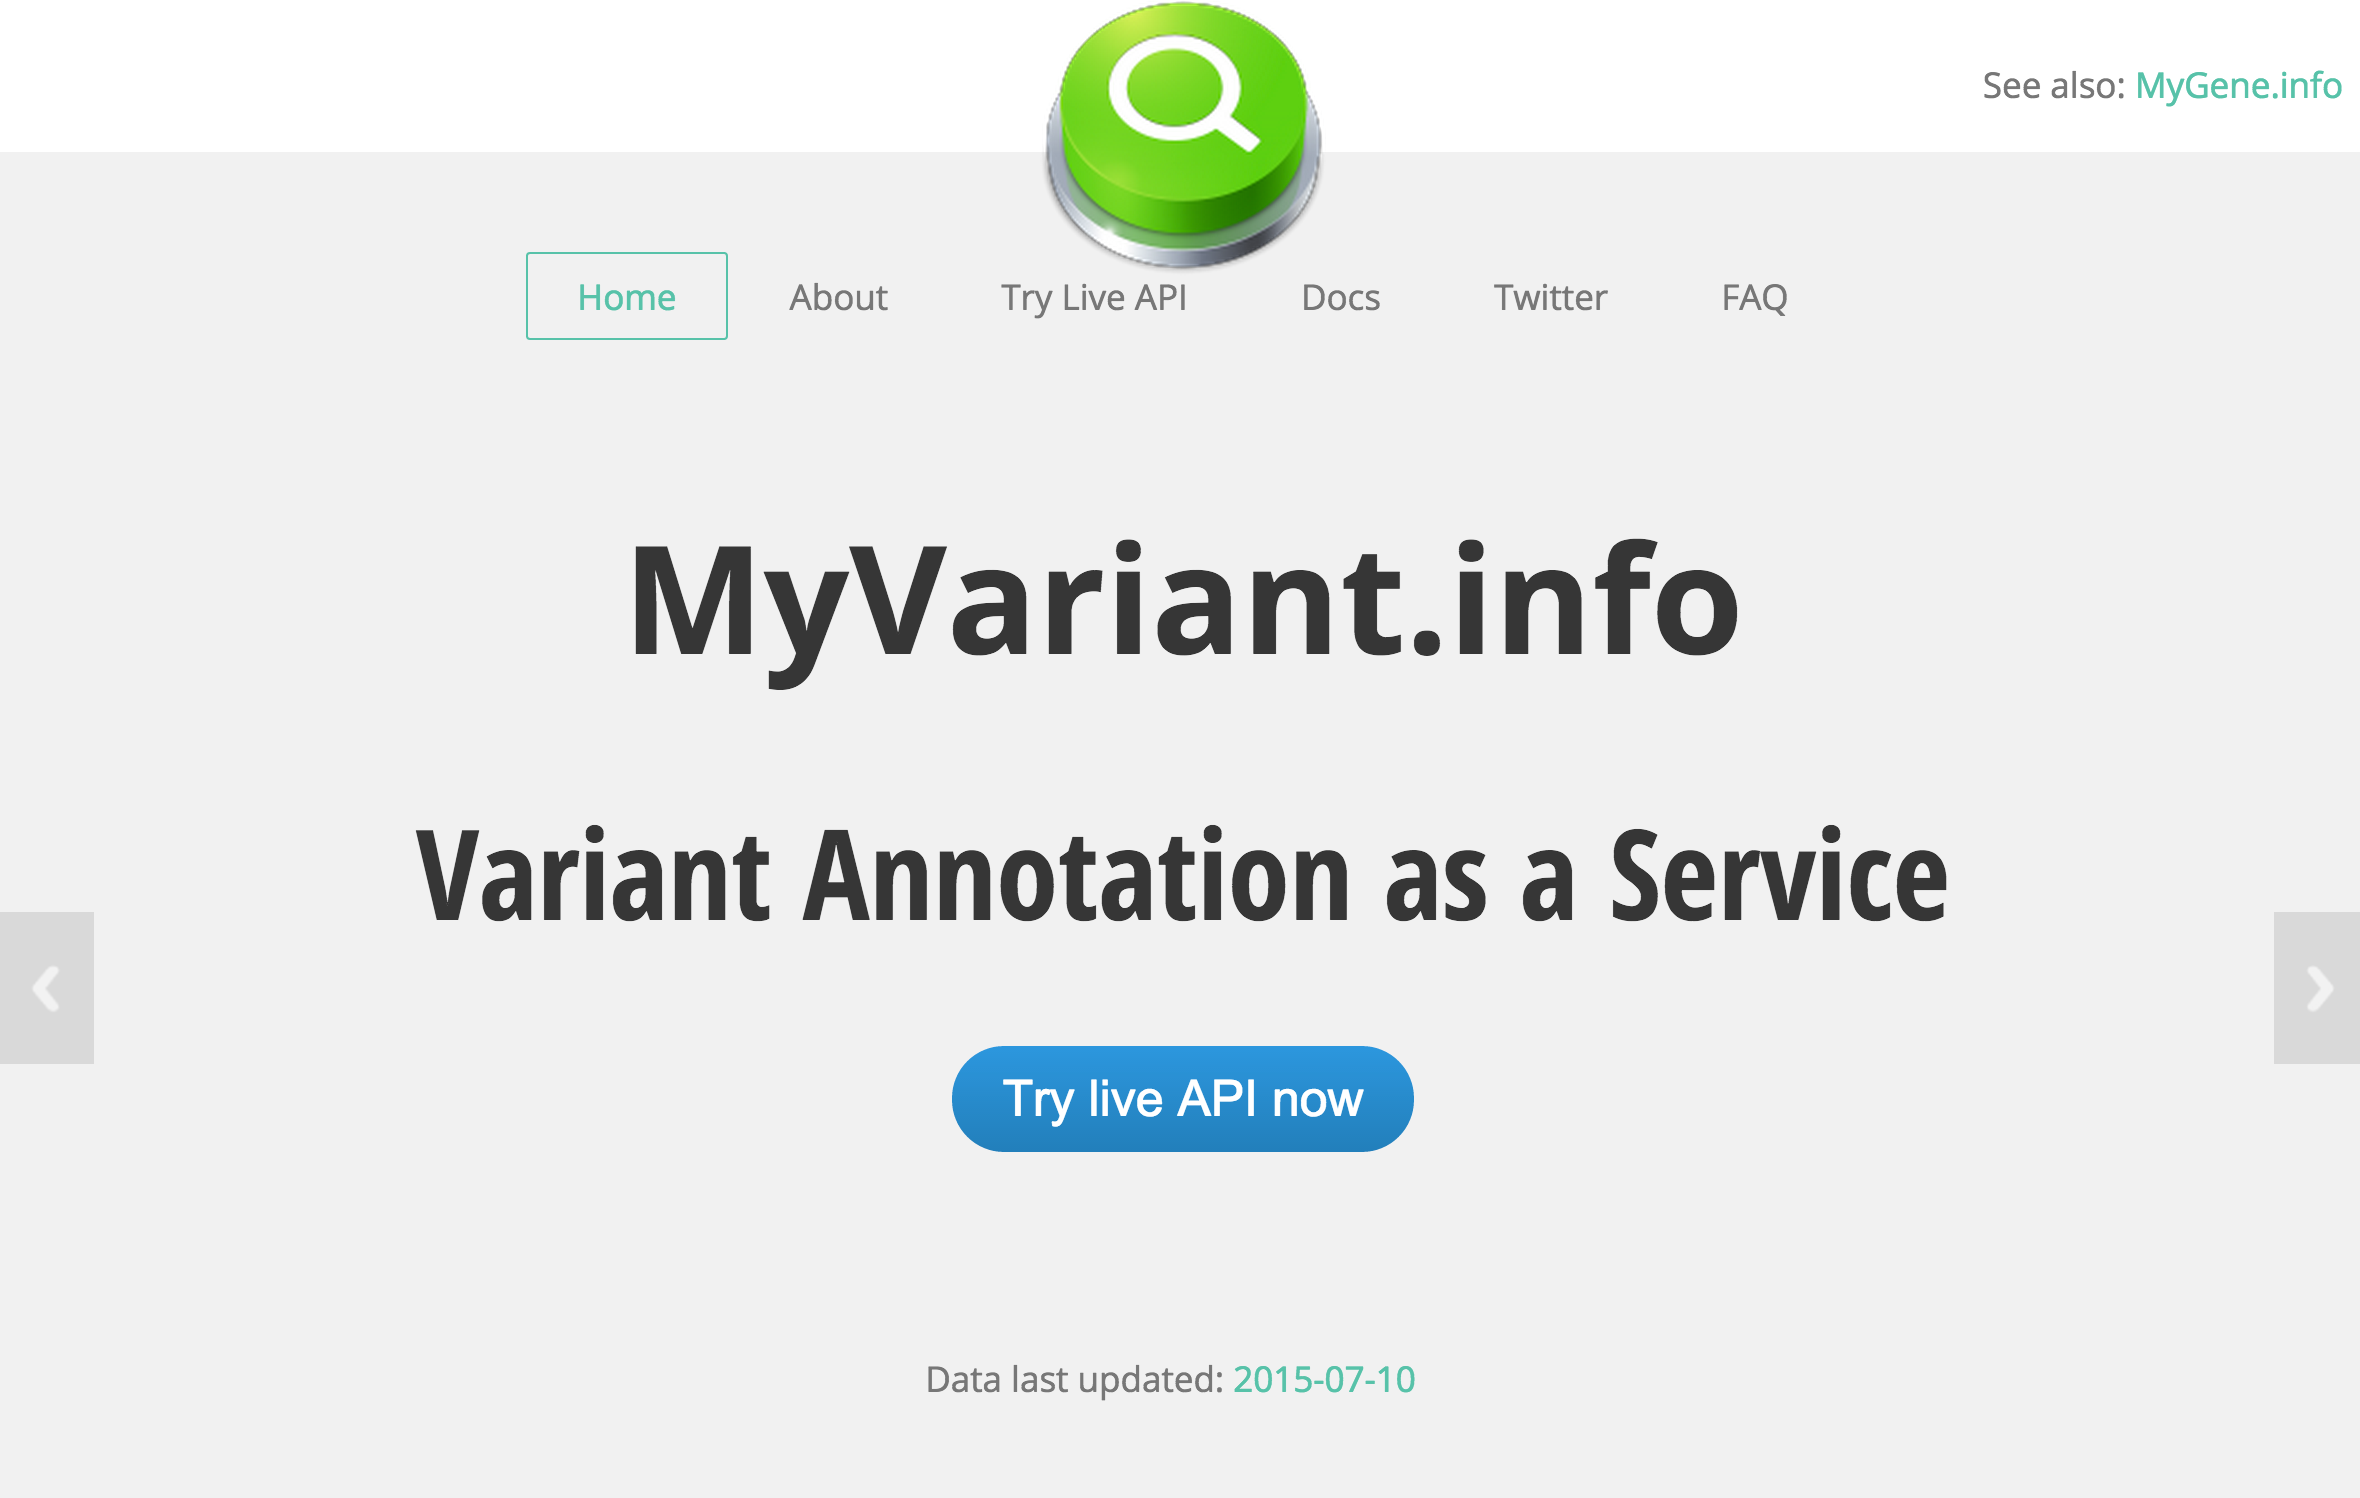 myvariant.info landing page